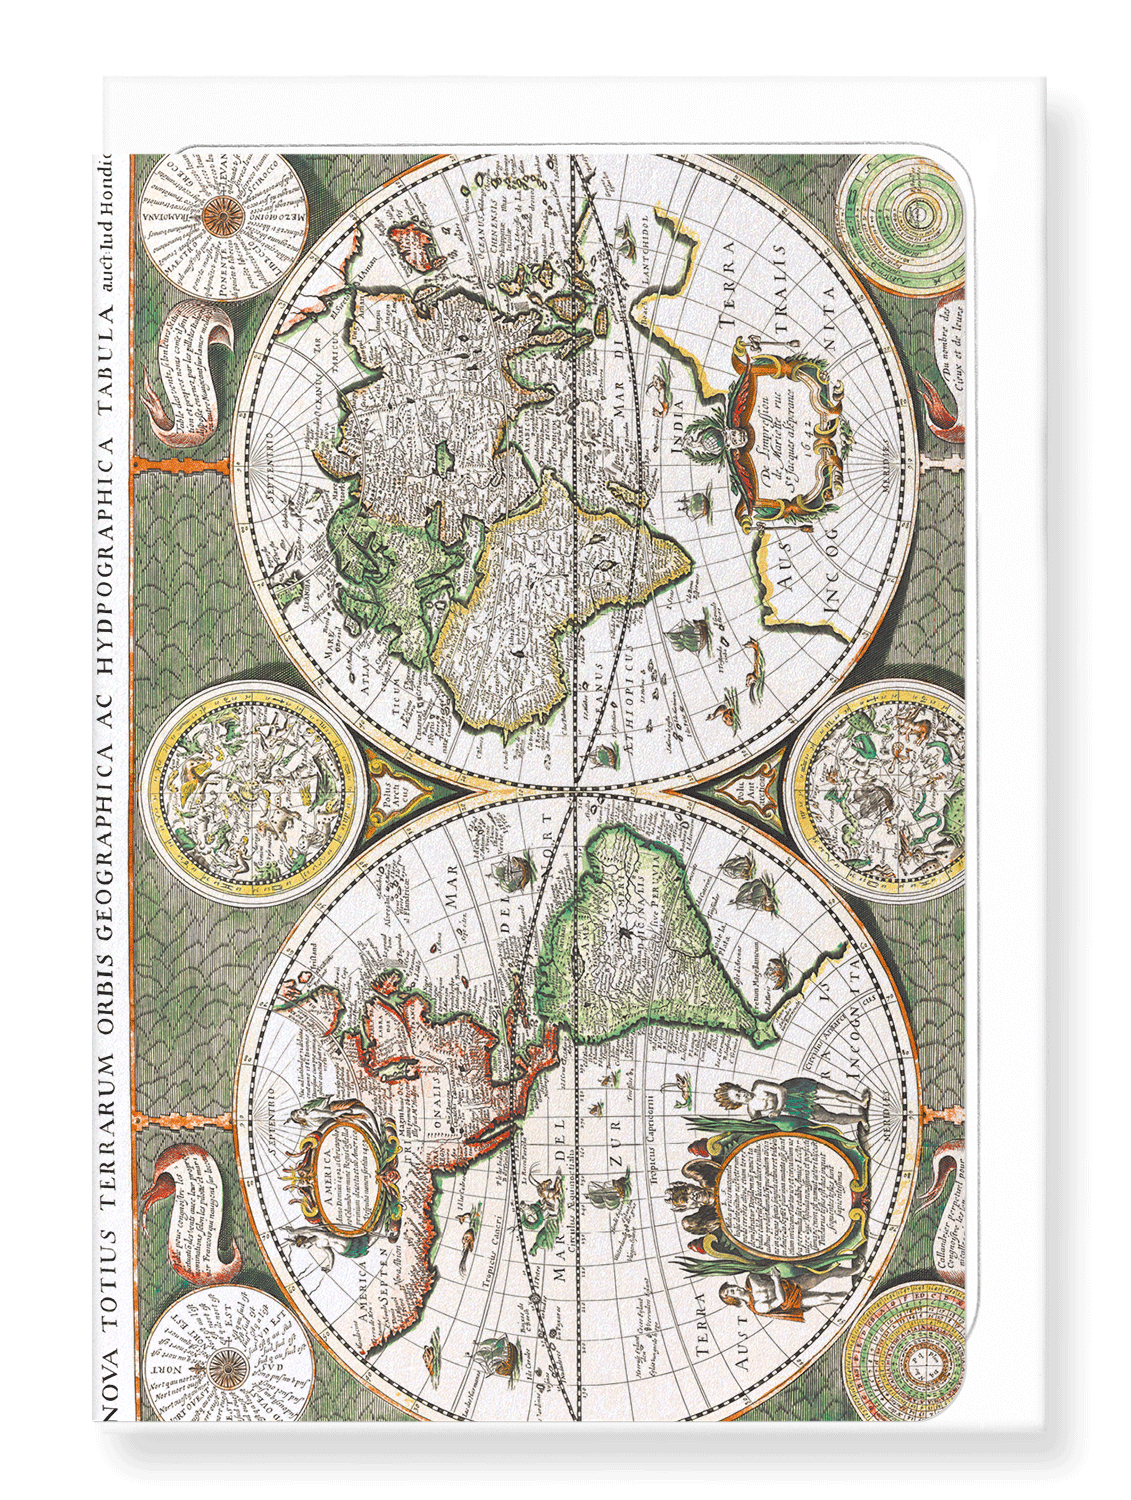 Ezen Designs - Terrarum orbis geographica (1643) - Greeting Card - Front